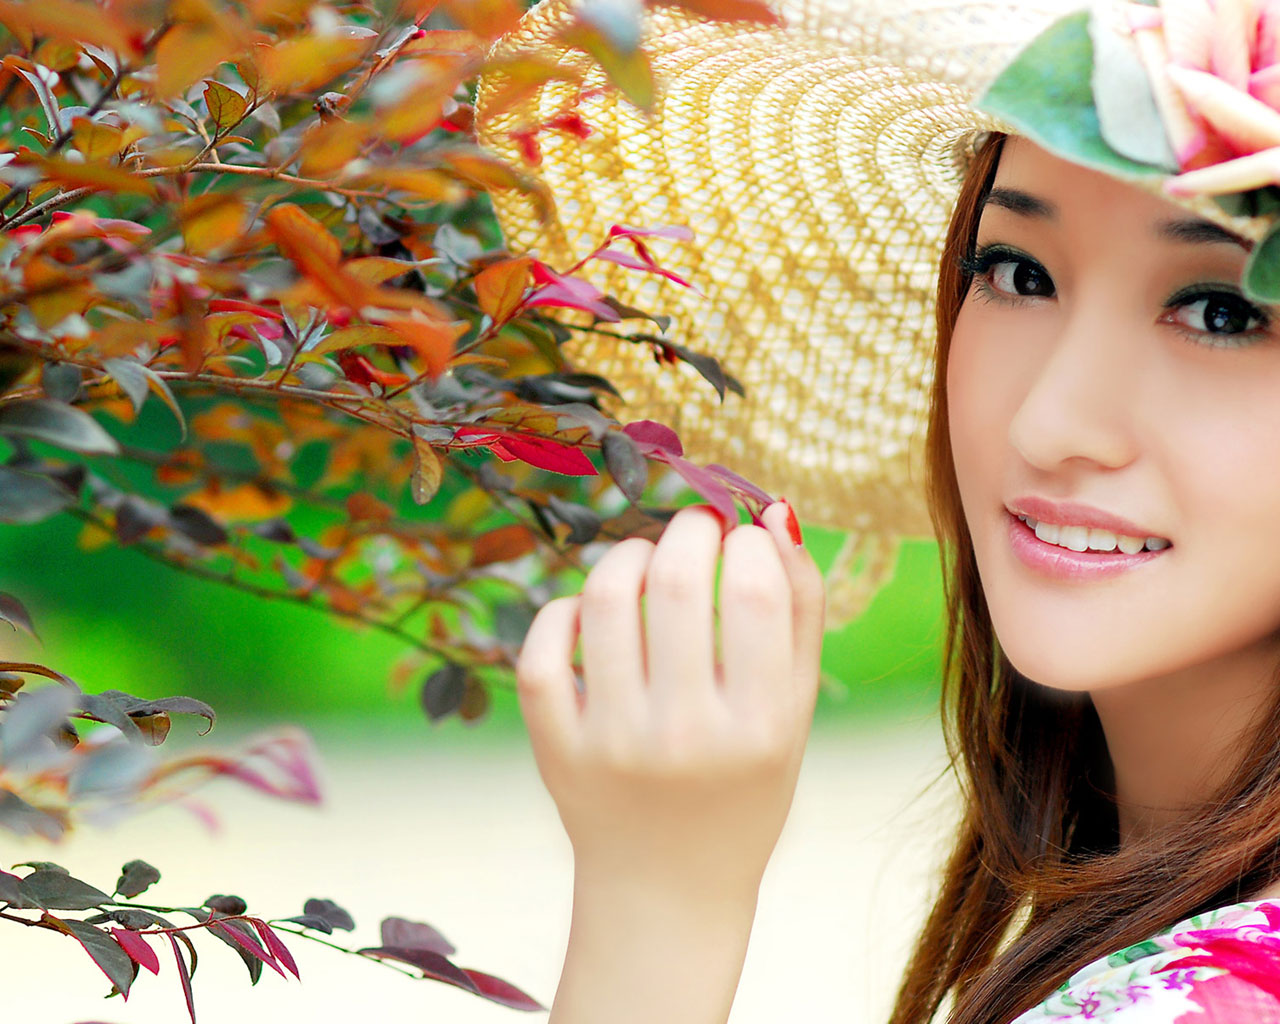 Cute Girl With Sweet Style Wallpaper   Lovely Girl In Colorful Garden